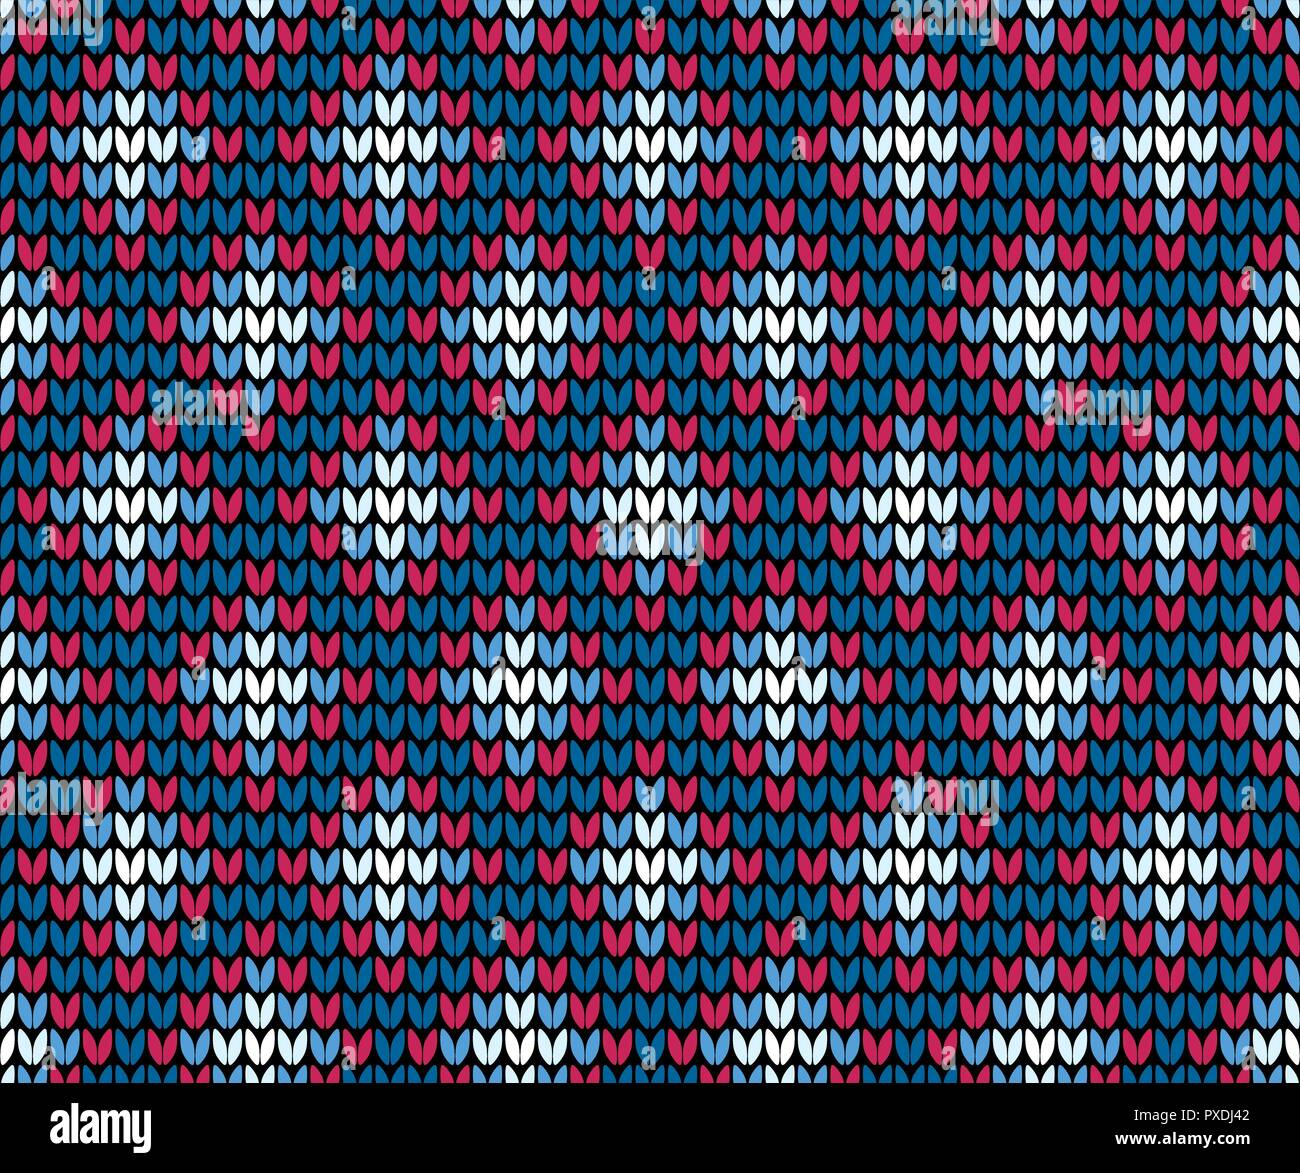 Abstract blue seamless knitting pattern with squares background - Stock Vector